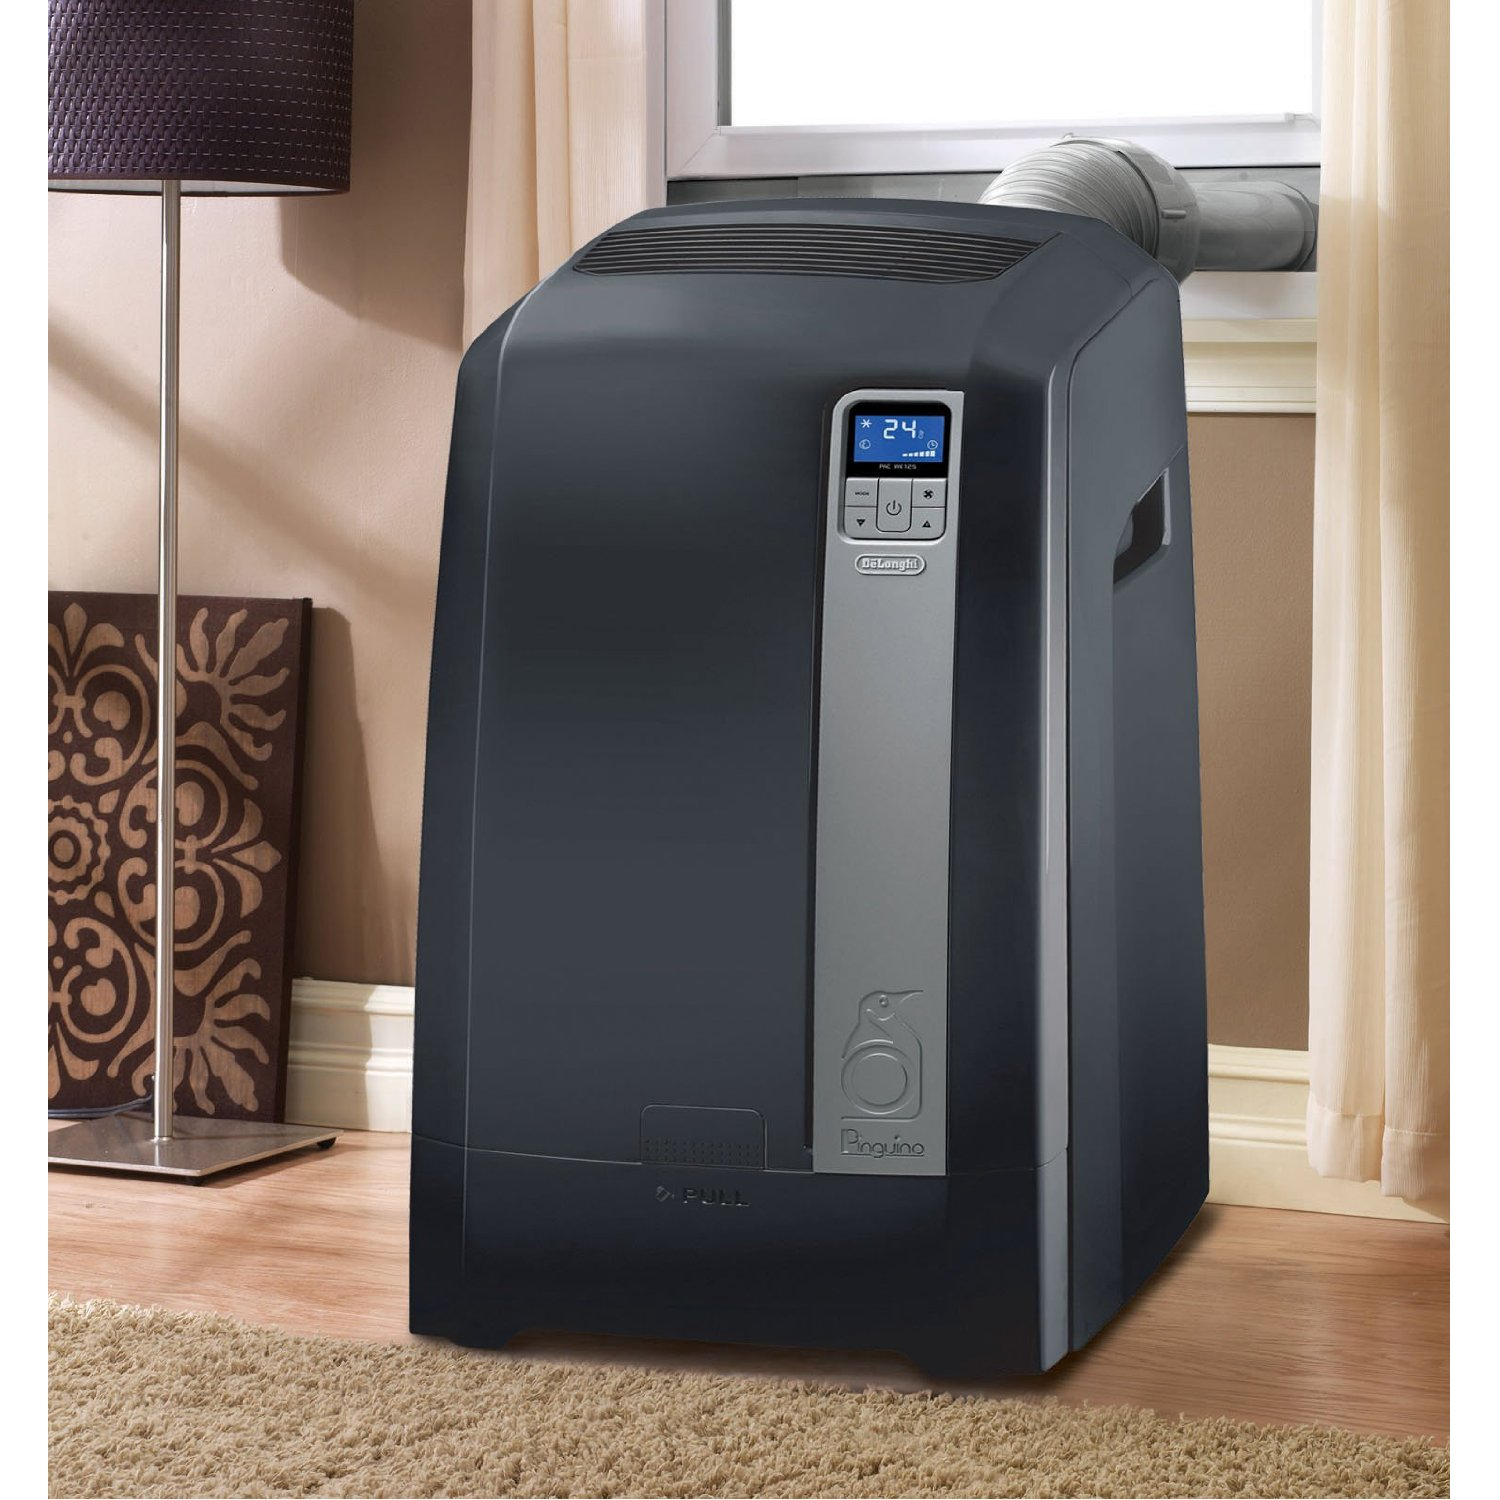 12 500 Btu Water to air Portable Air Conditioner #866345